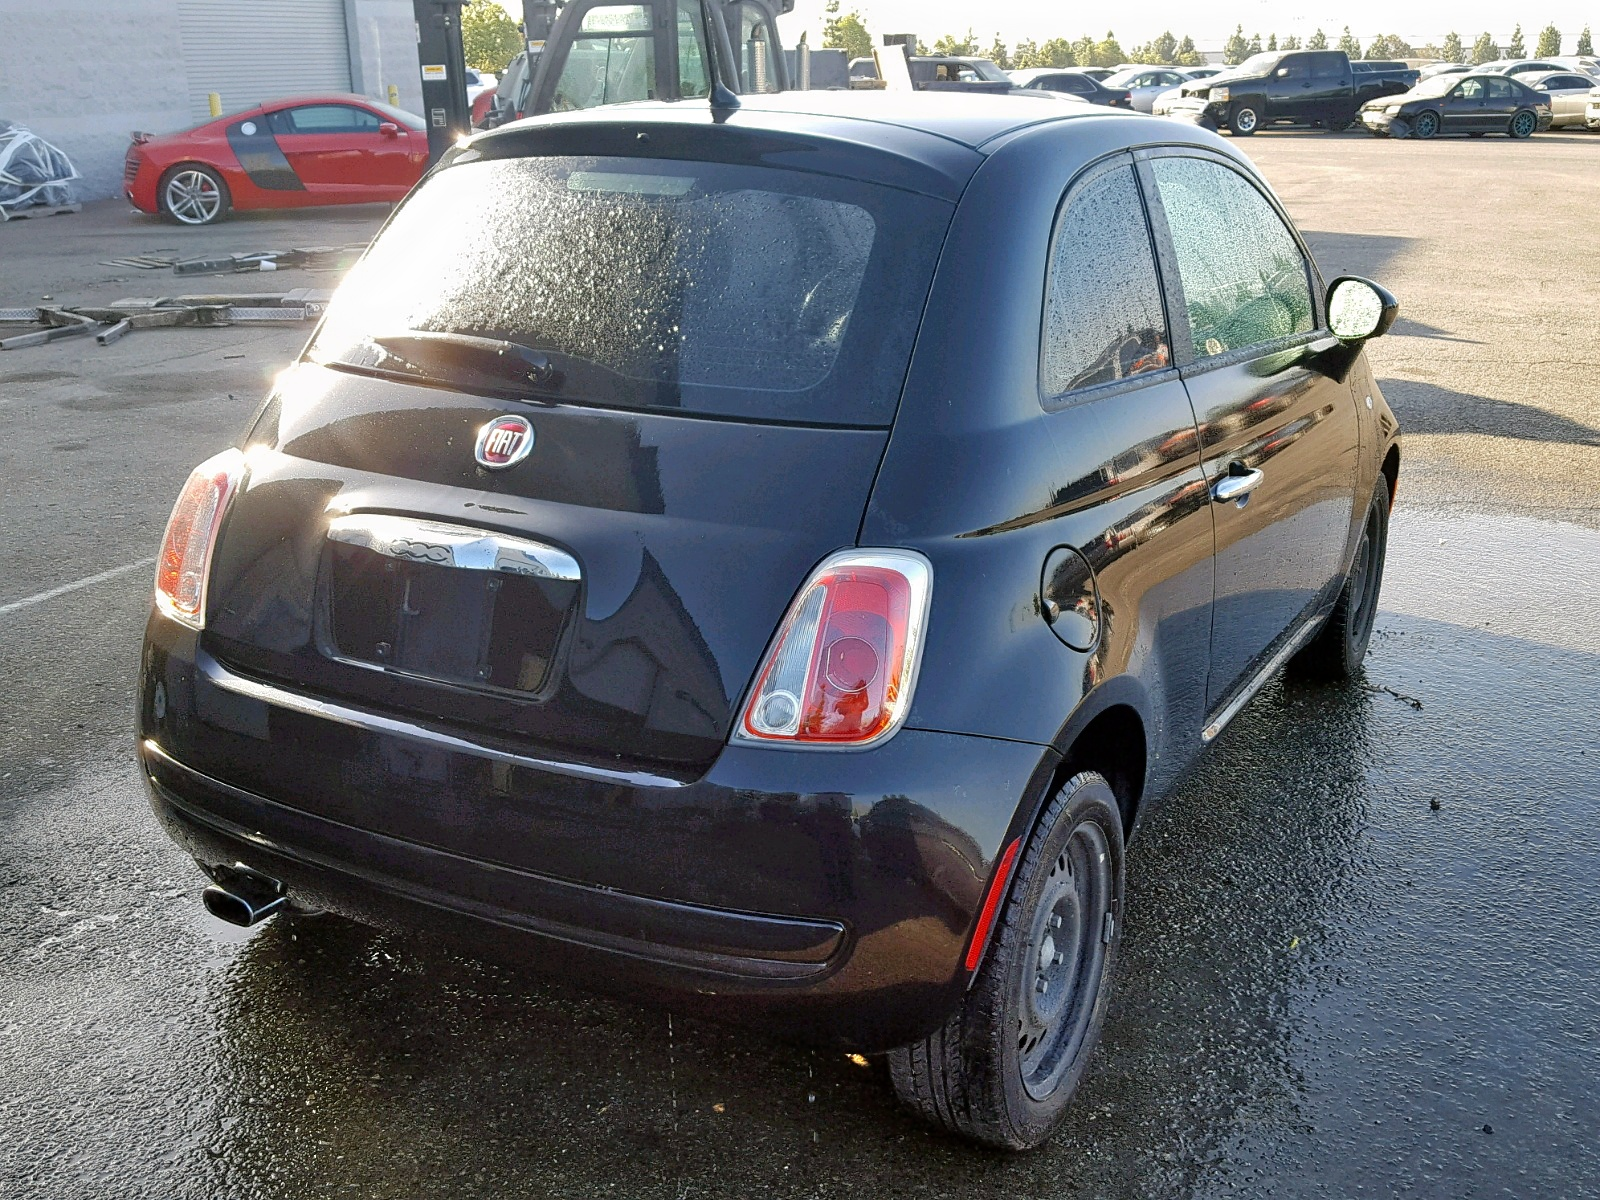 2012 Fiat 500 Pop 1.4L rear view